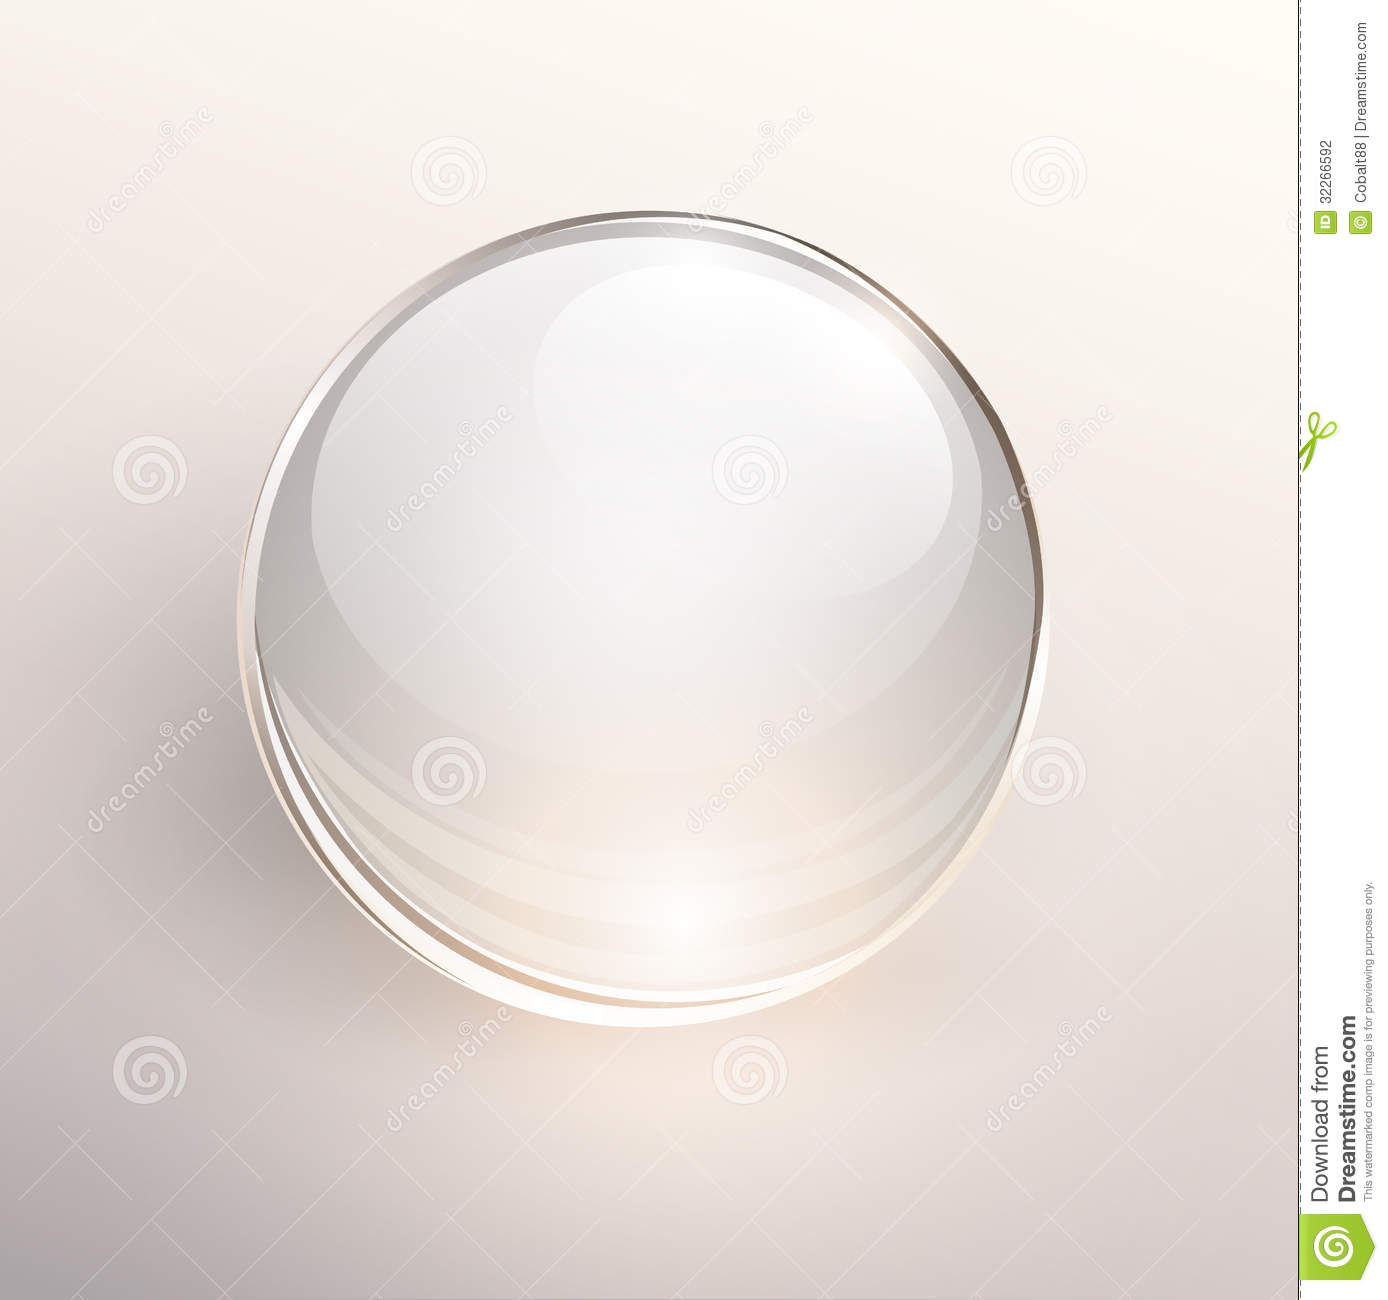 Glass Ball Background Stock Photography - Image: 32266592